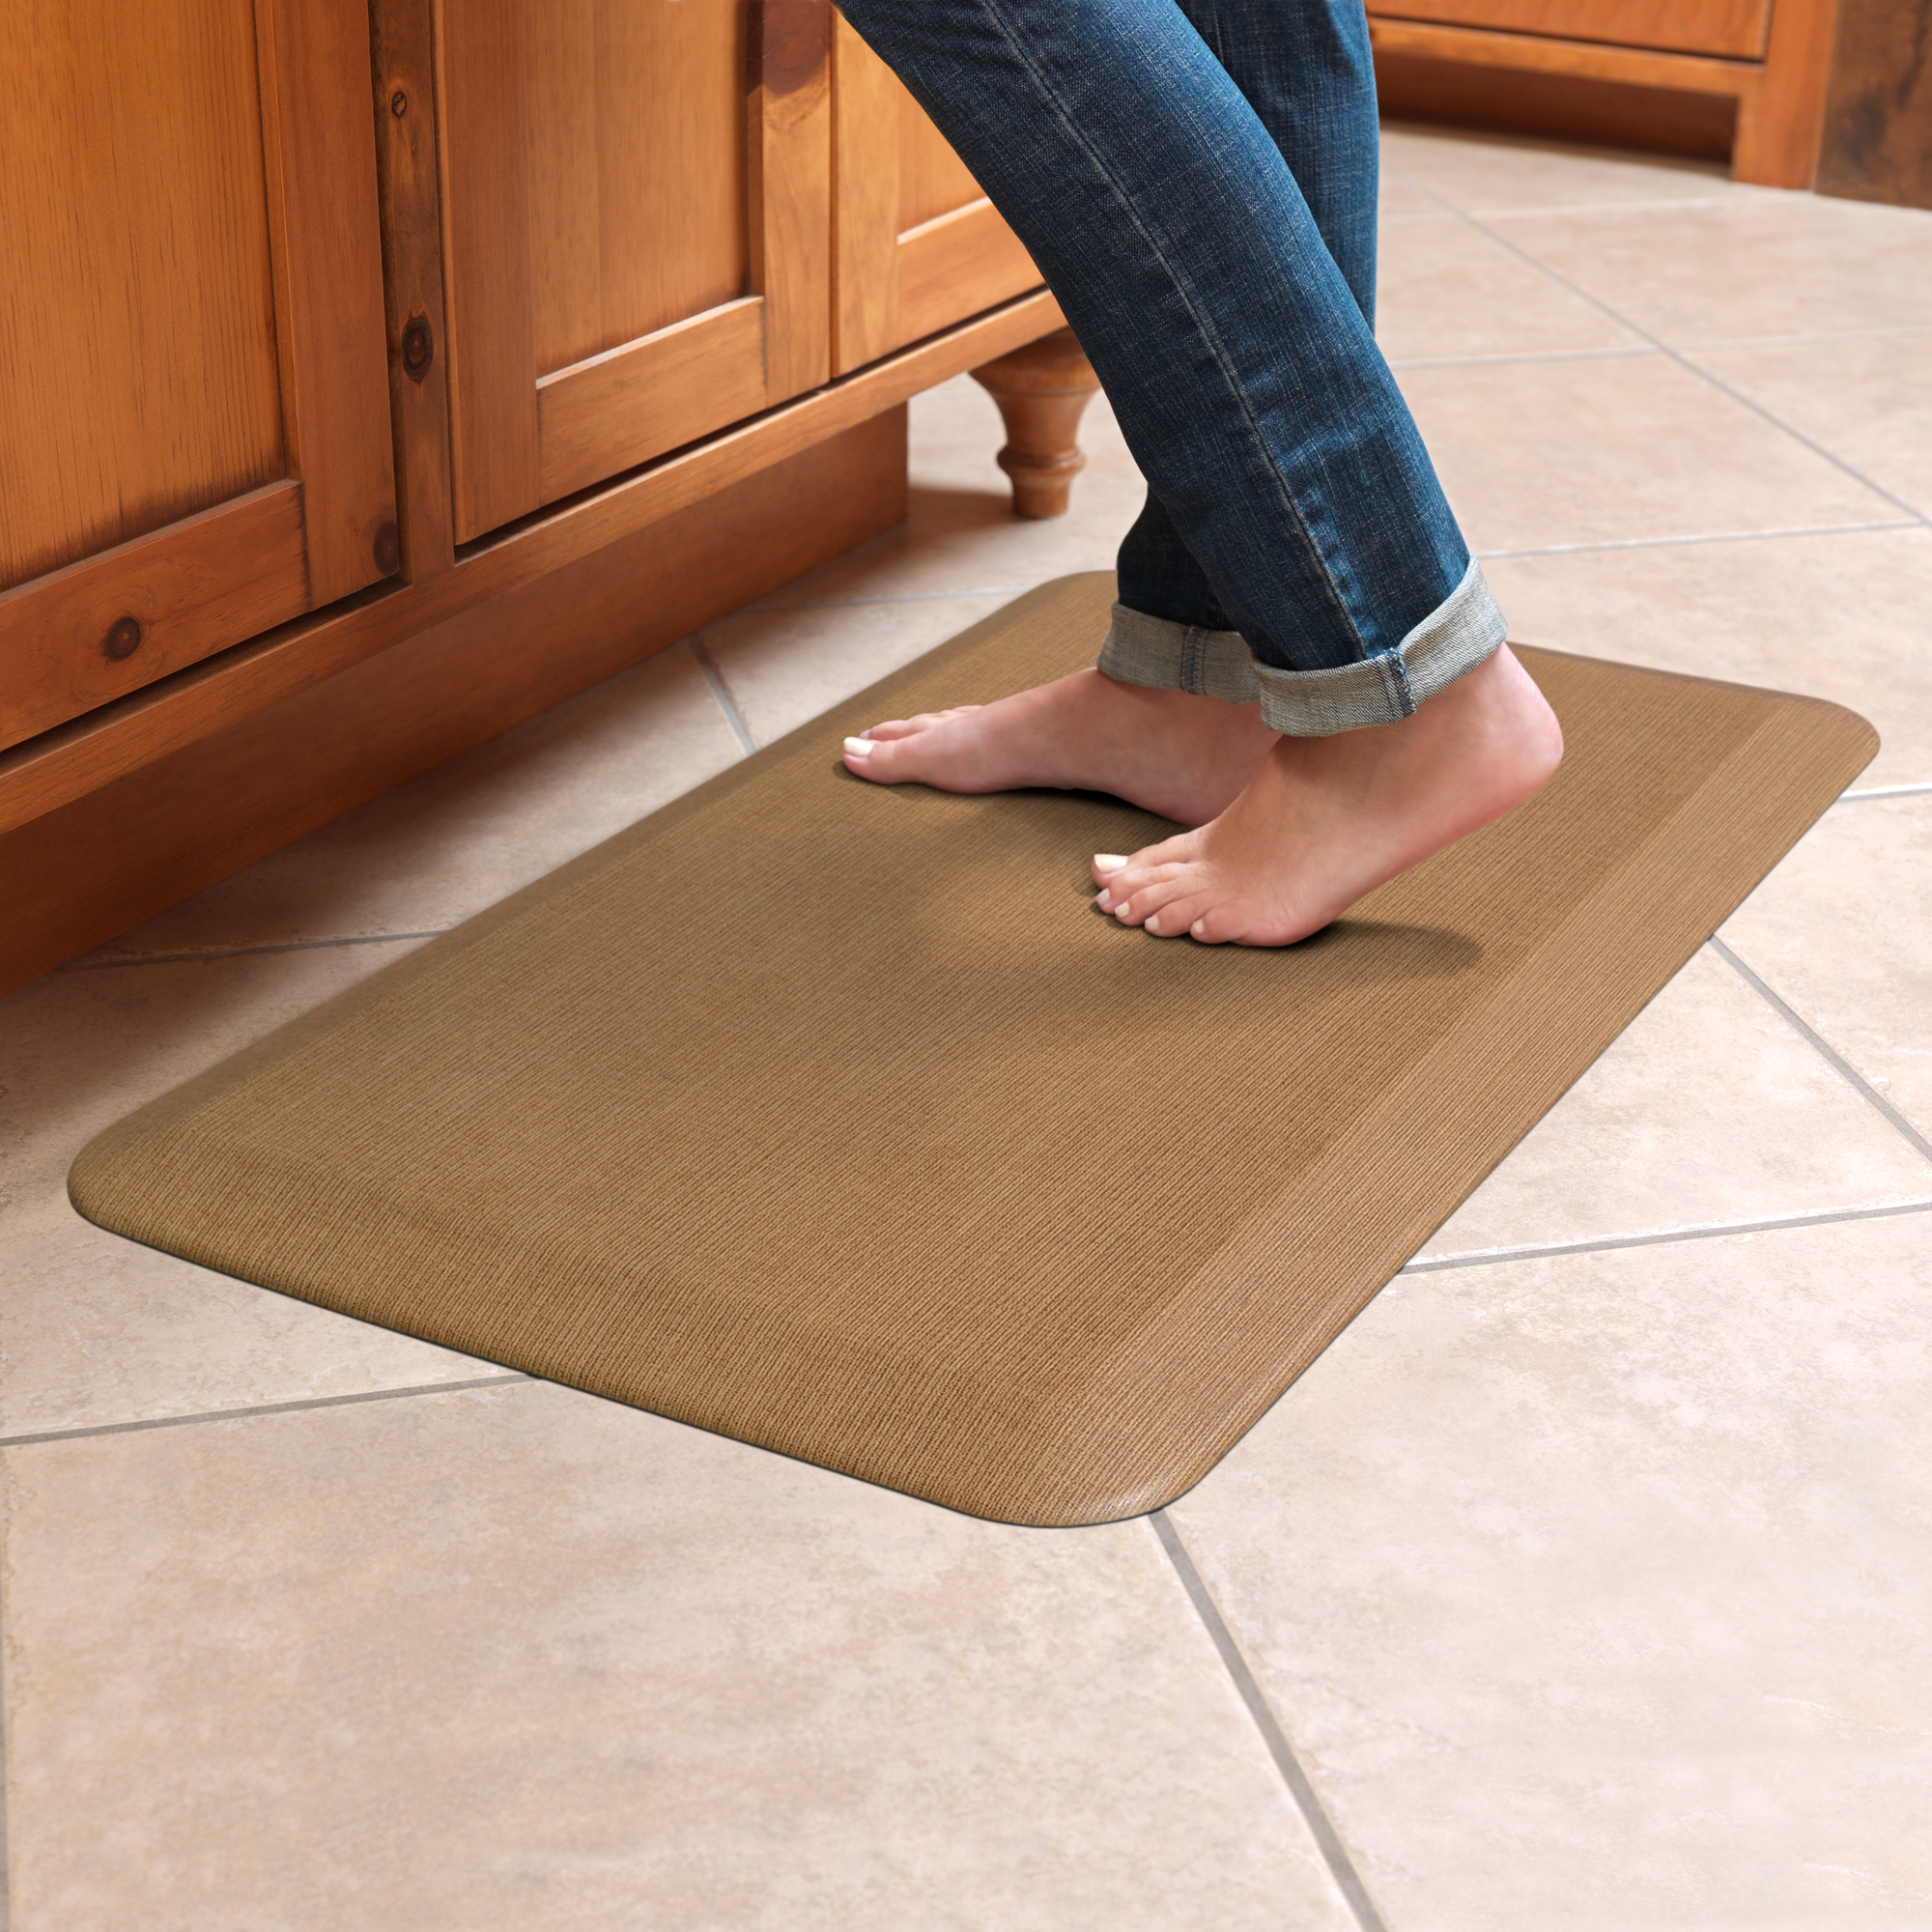 NewLife by GelPro Anti-Fatigue Comfort Mat 20x32 Grasscloth ...